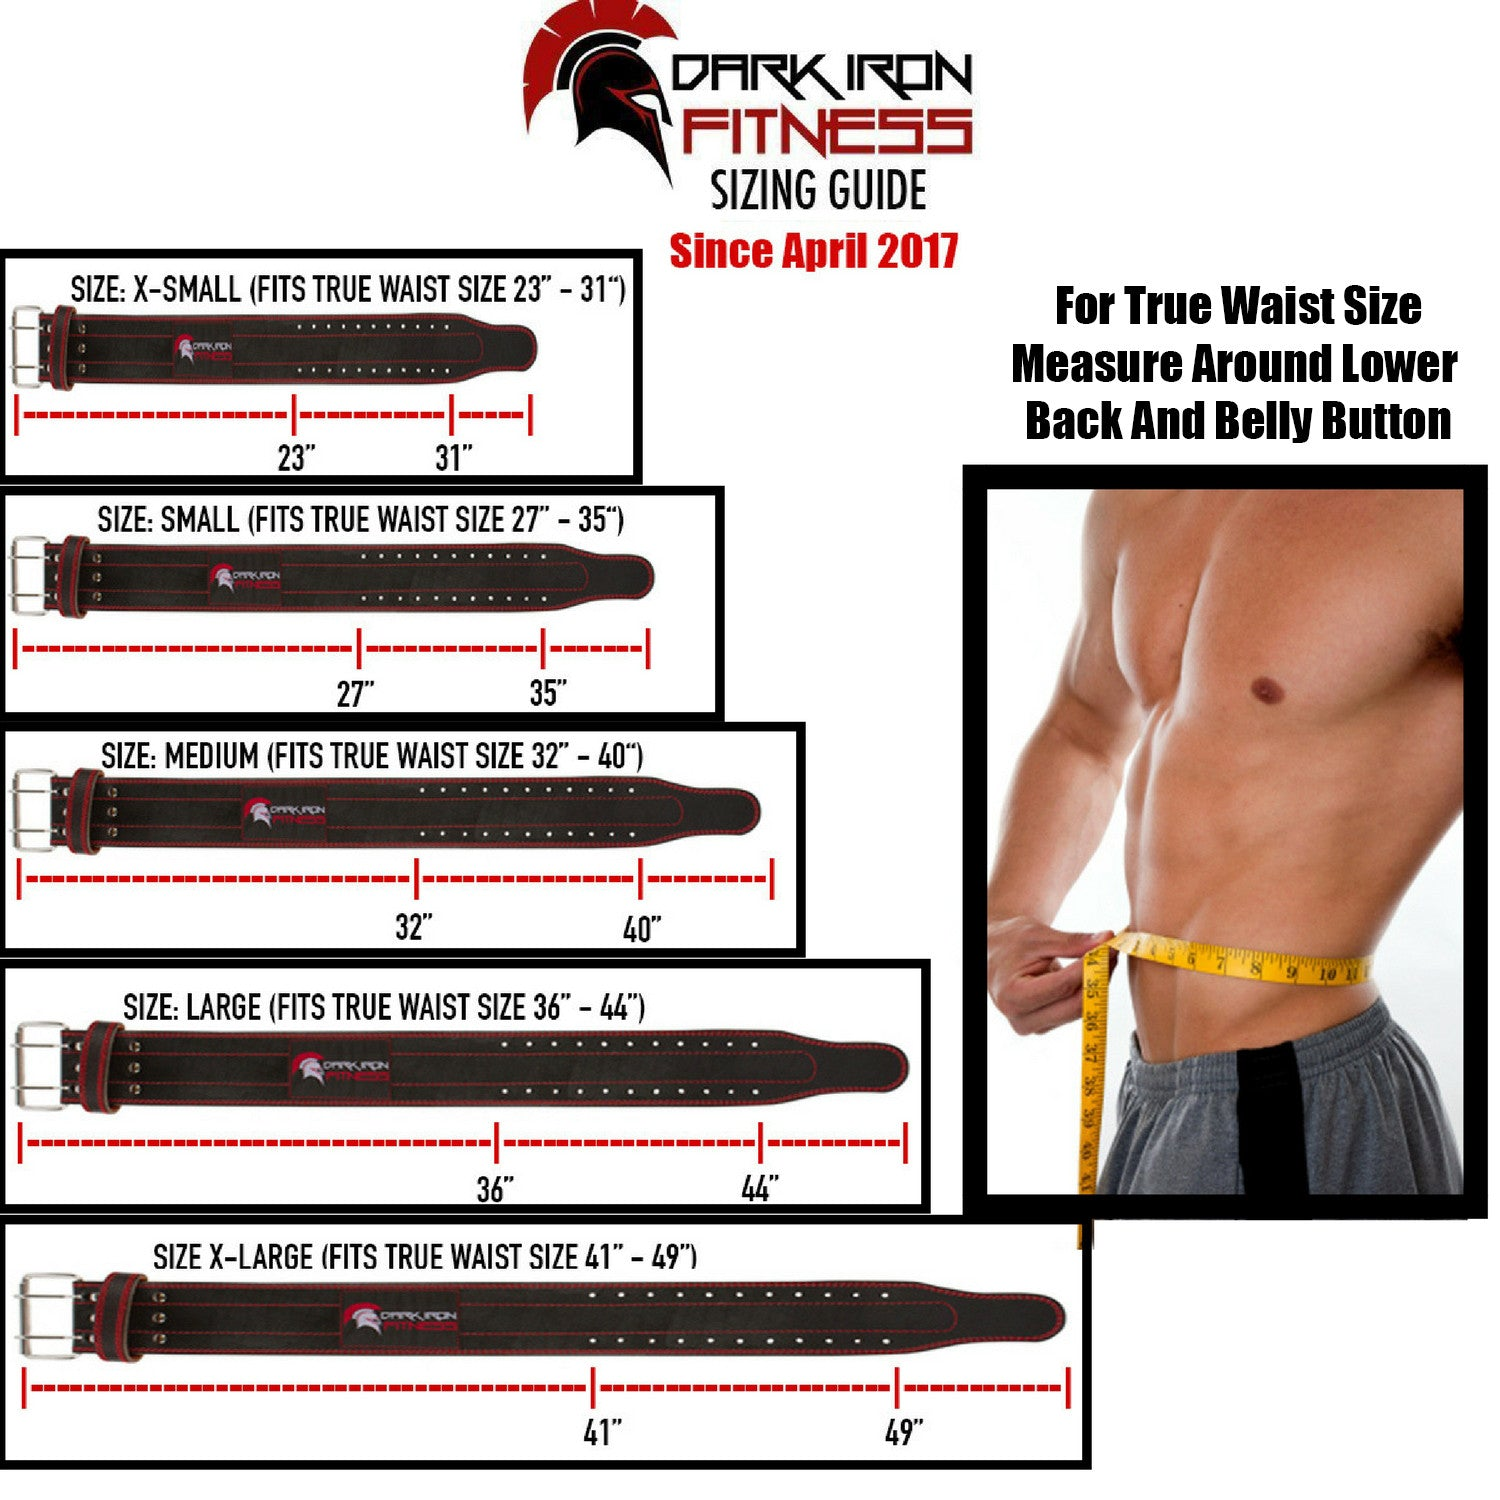 Dark iron fitness genuine leather weight lifting belt dark iron dark iron fitness genuine leather weight lifting belt nvjuhfo Gallery